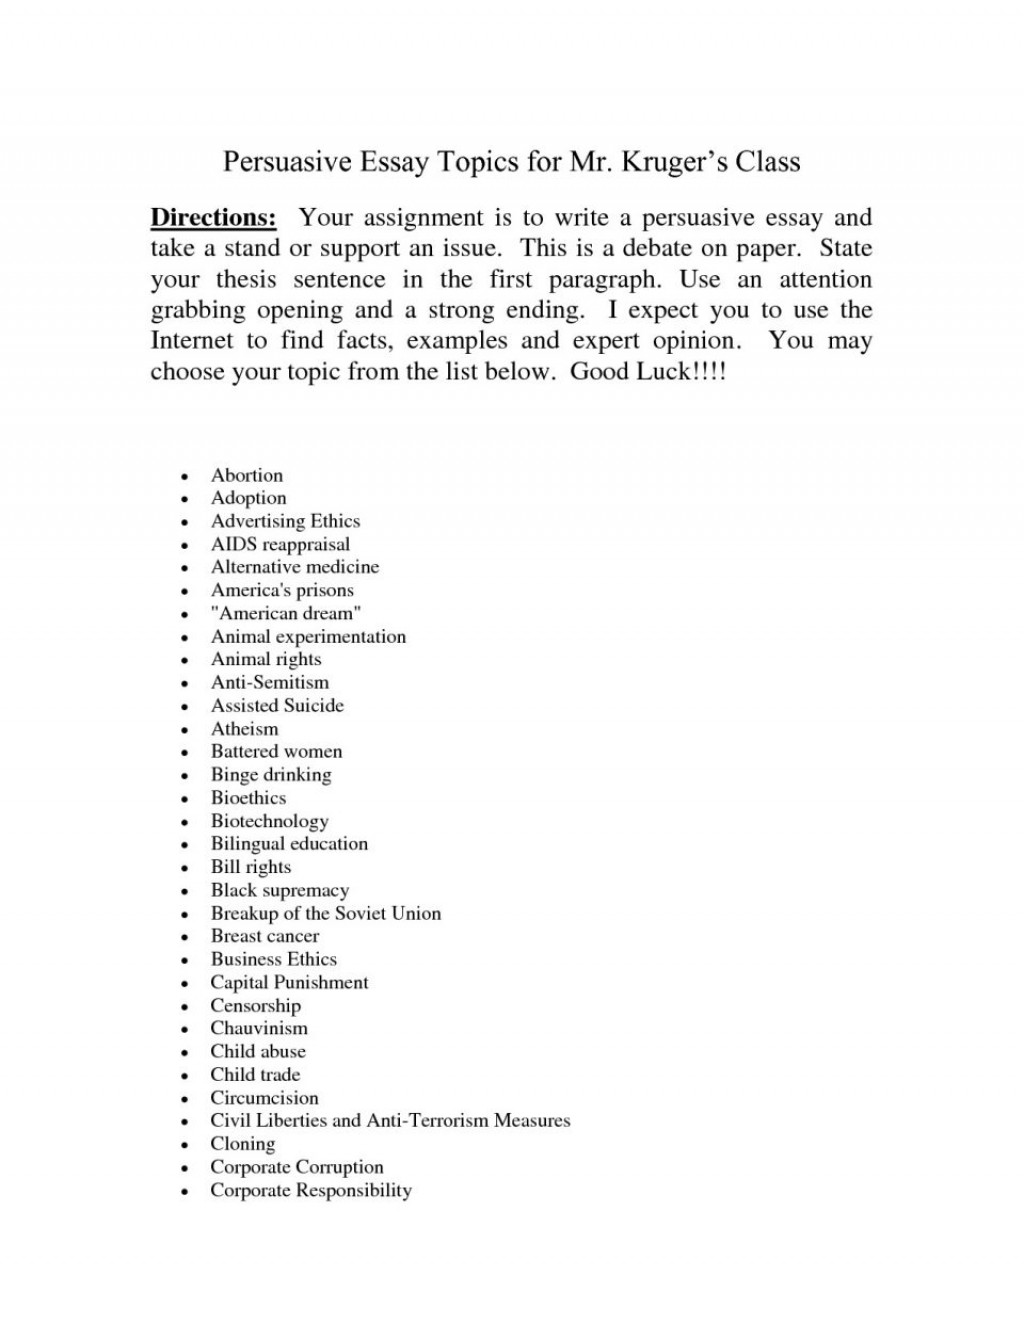 011 Research Paper Good Topic For Essay Barca Fontanacountryinn Within Persuasive Narrative Topics To Write Abo Easy About Personal Descriptive Informative Singular Best Ideas History High School Students In The Philippines Large